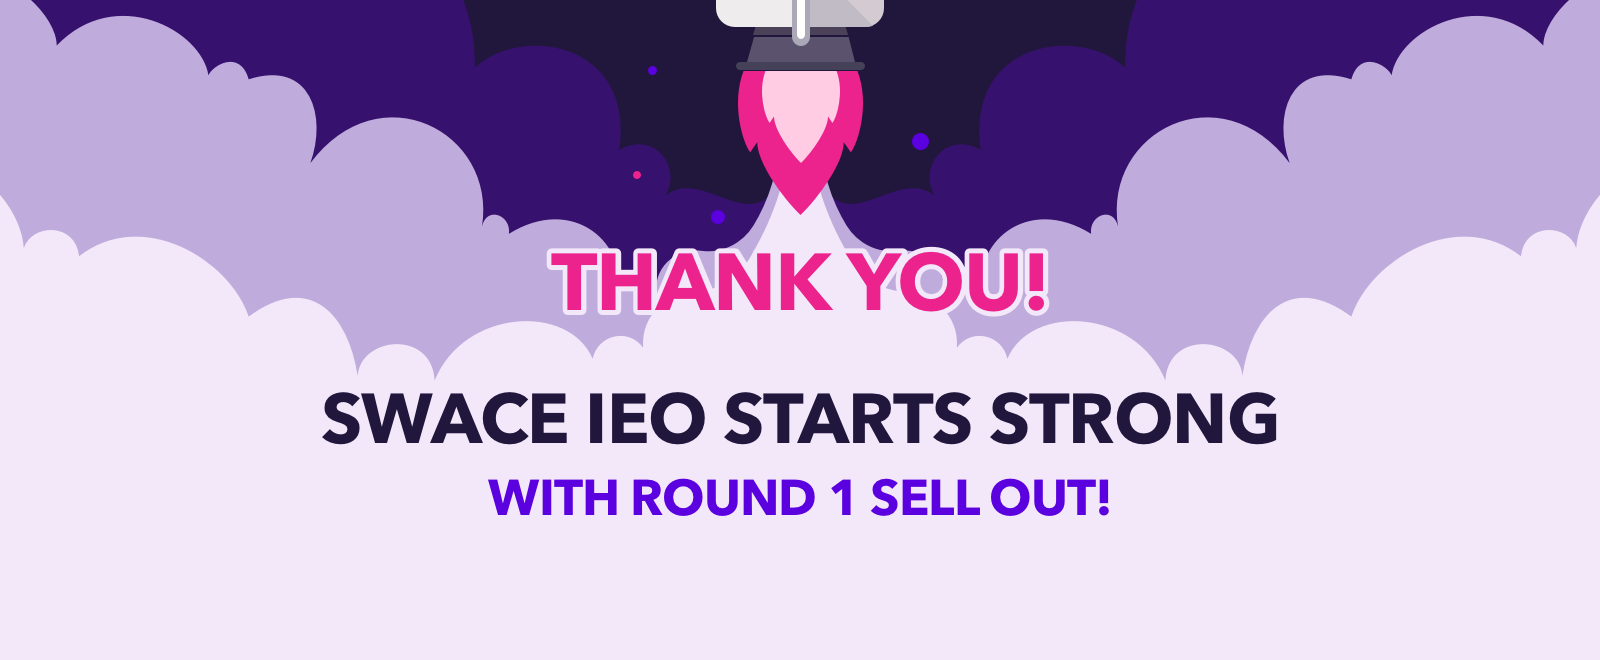 SWACE: ROARING success of The first round of IEO